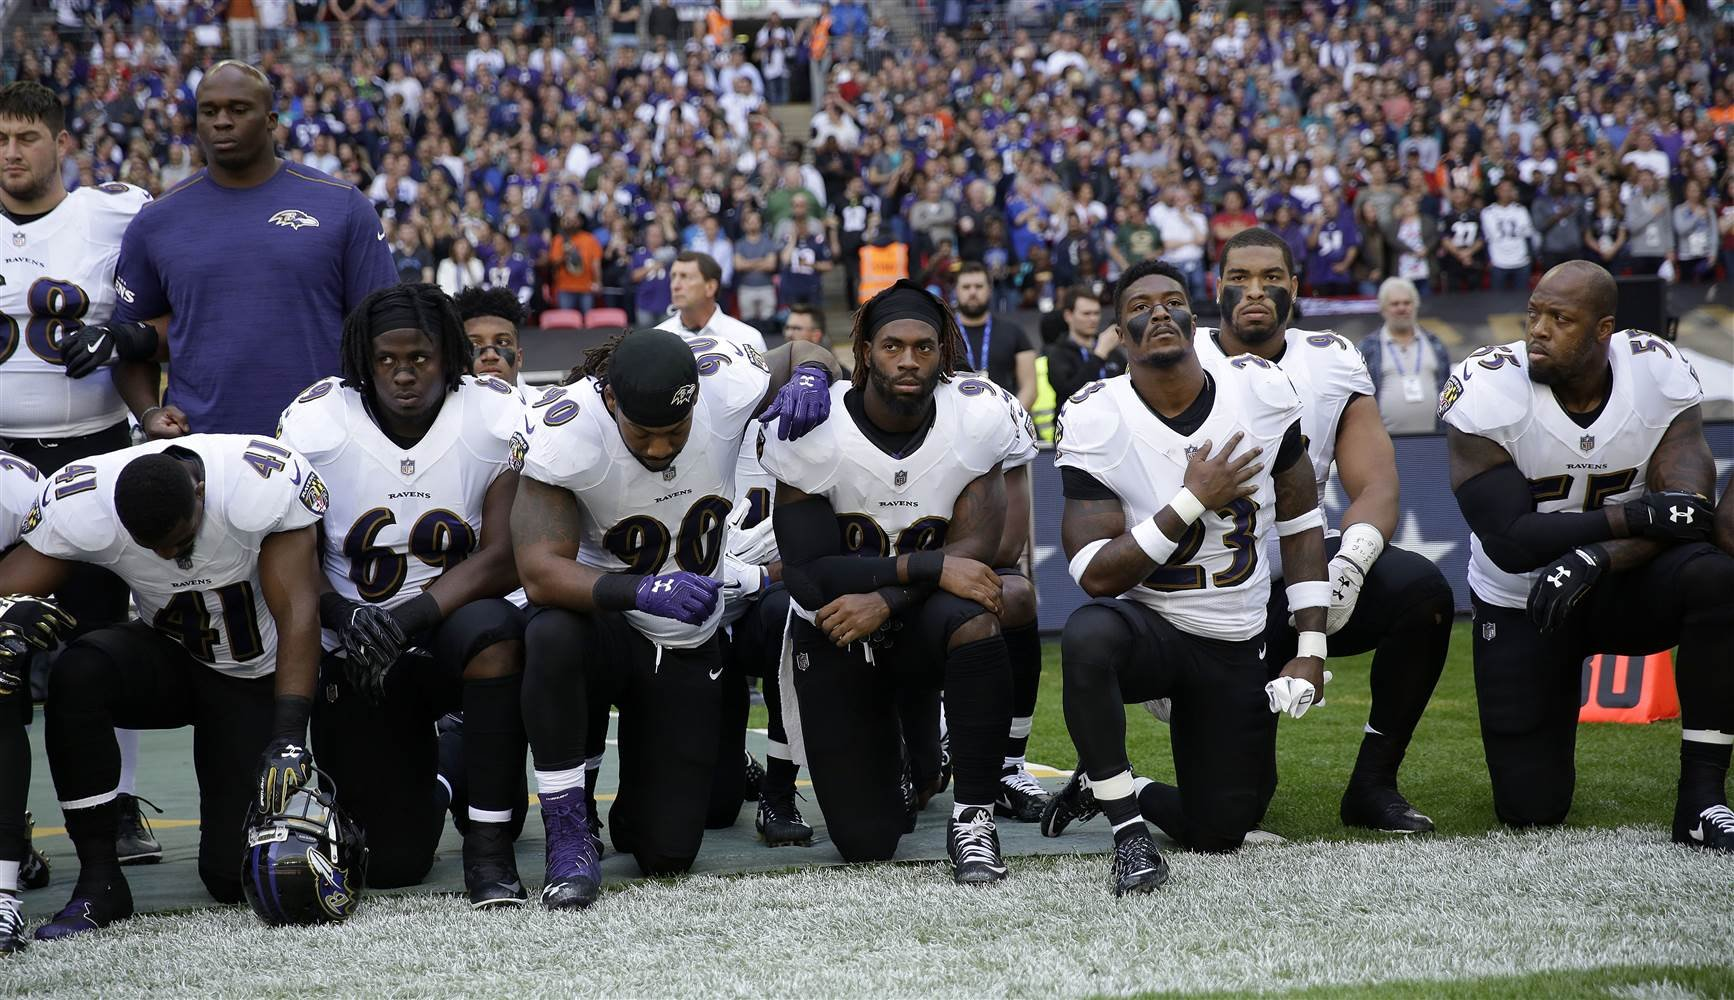 Ravens national anthem singer resigns amid controversy